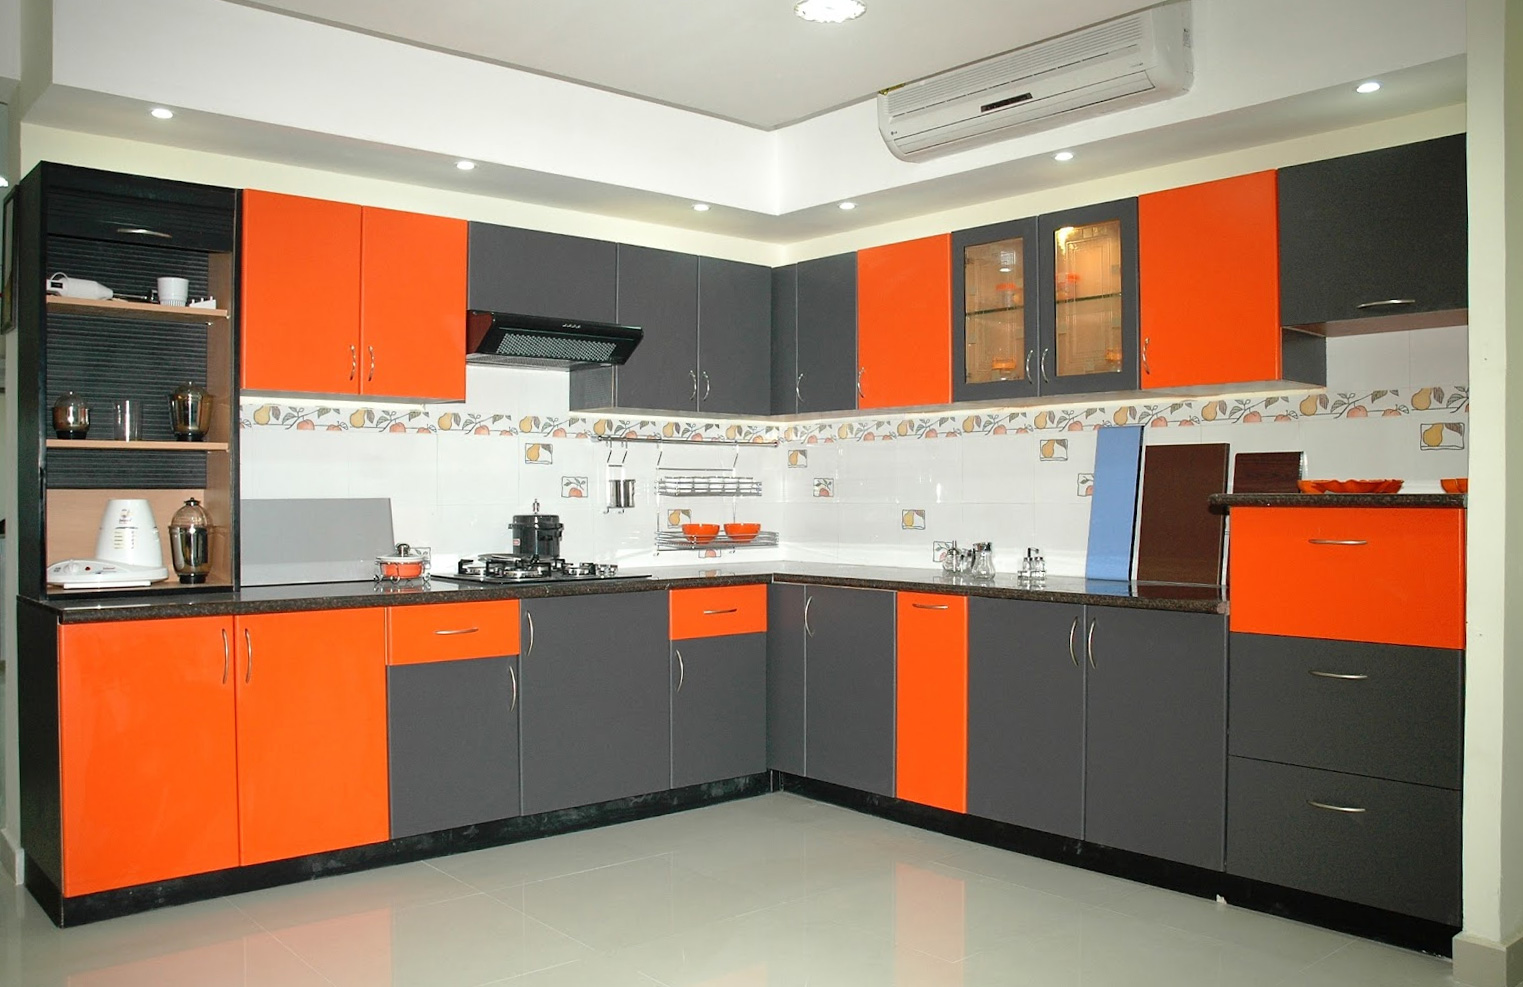 Aadhavan sai decors dealing with all types of decors for Aluminium kitchen cabinets in chennai